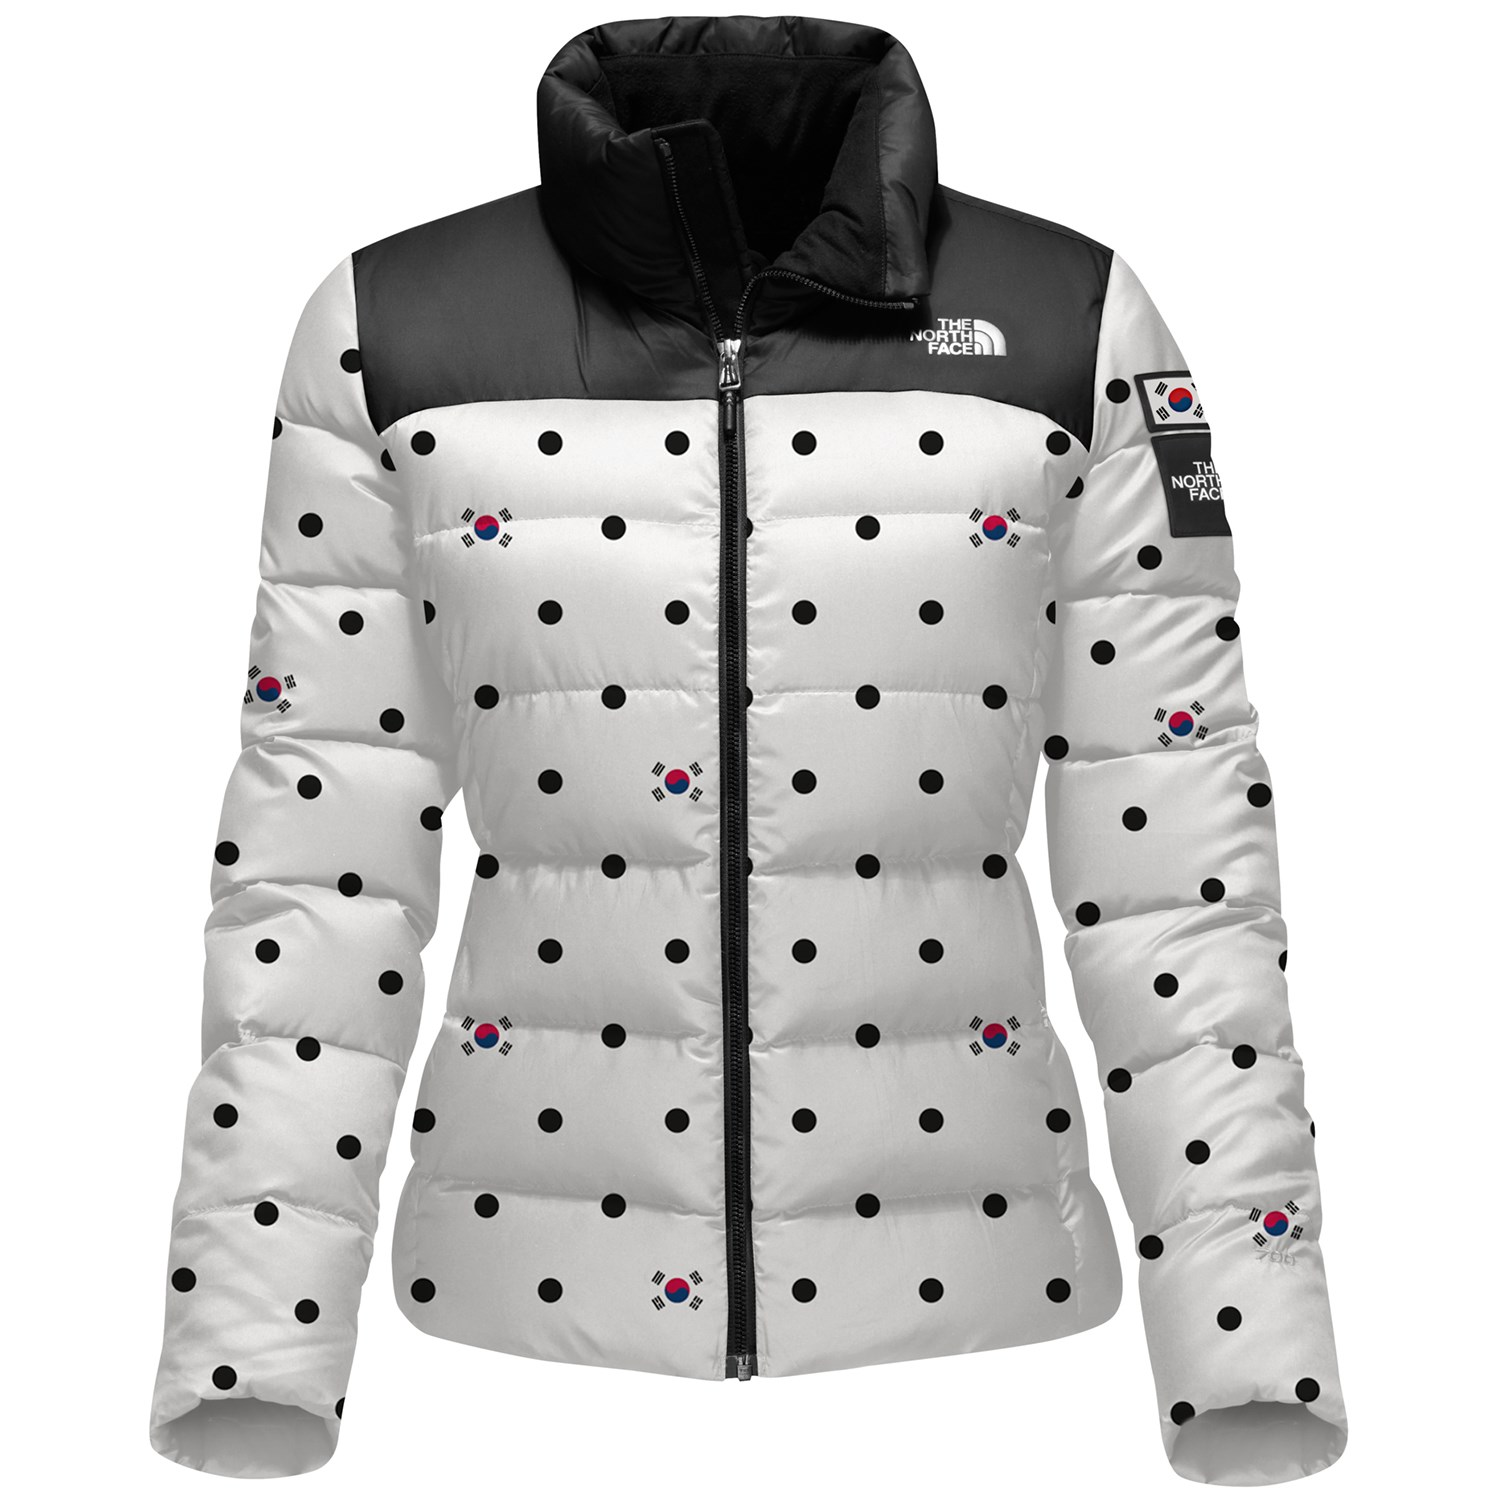 6fa56d80c The North Face International Collection Nuptse Jacket - Women's | evo